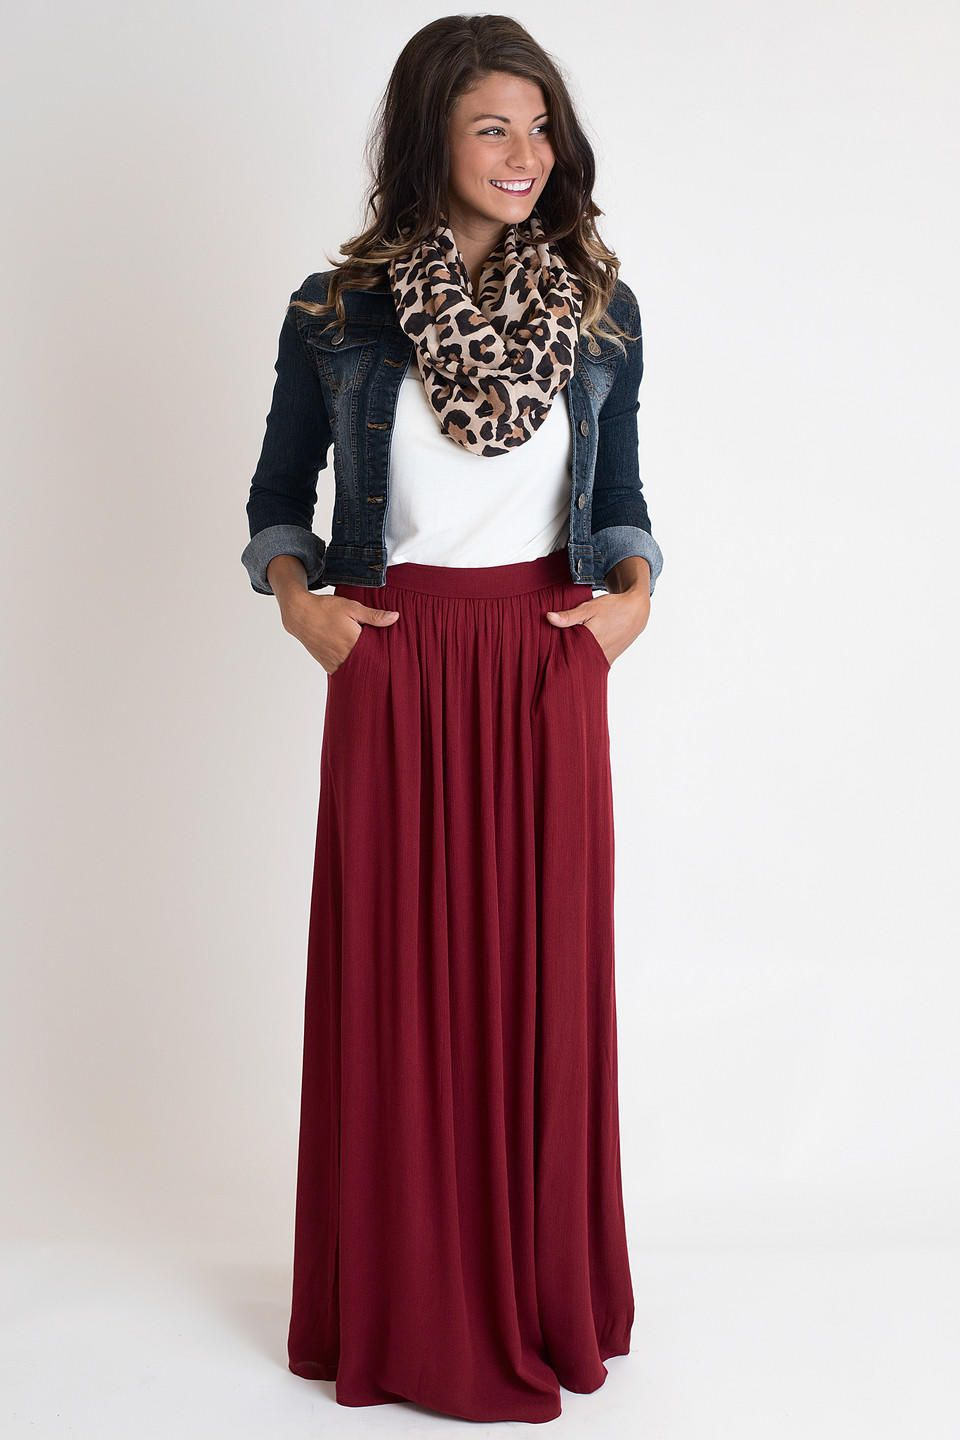 babafaf55 Tricks Or Treat Burgundy Maxi Skirt from Single Thread Boutique. Saved to  clothes.